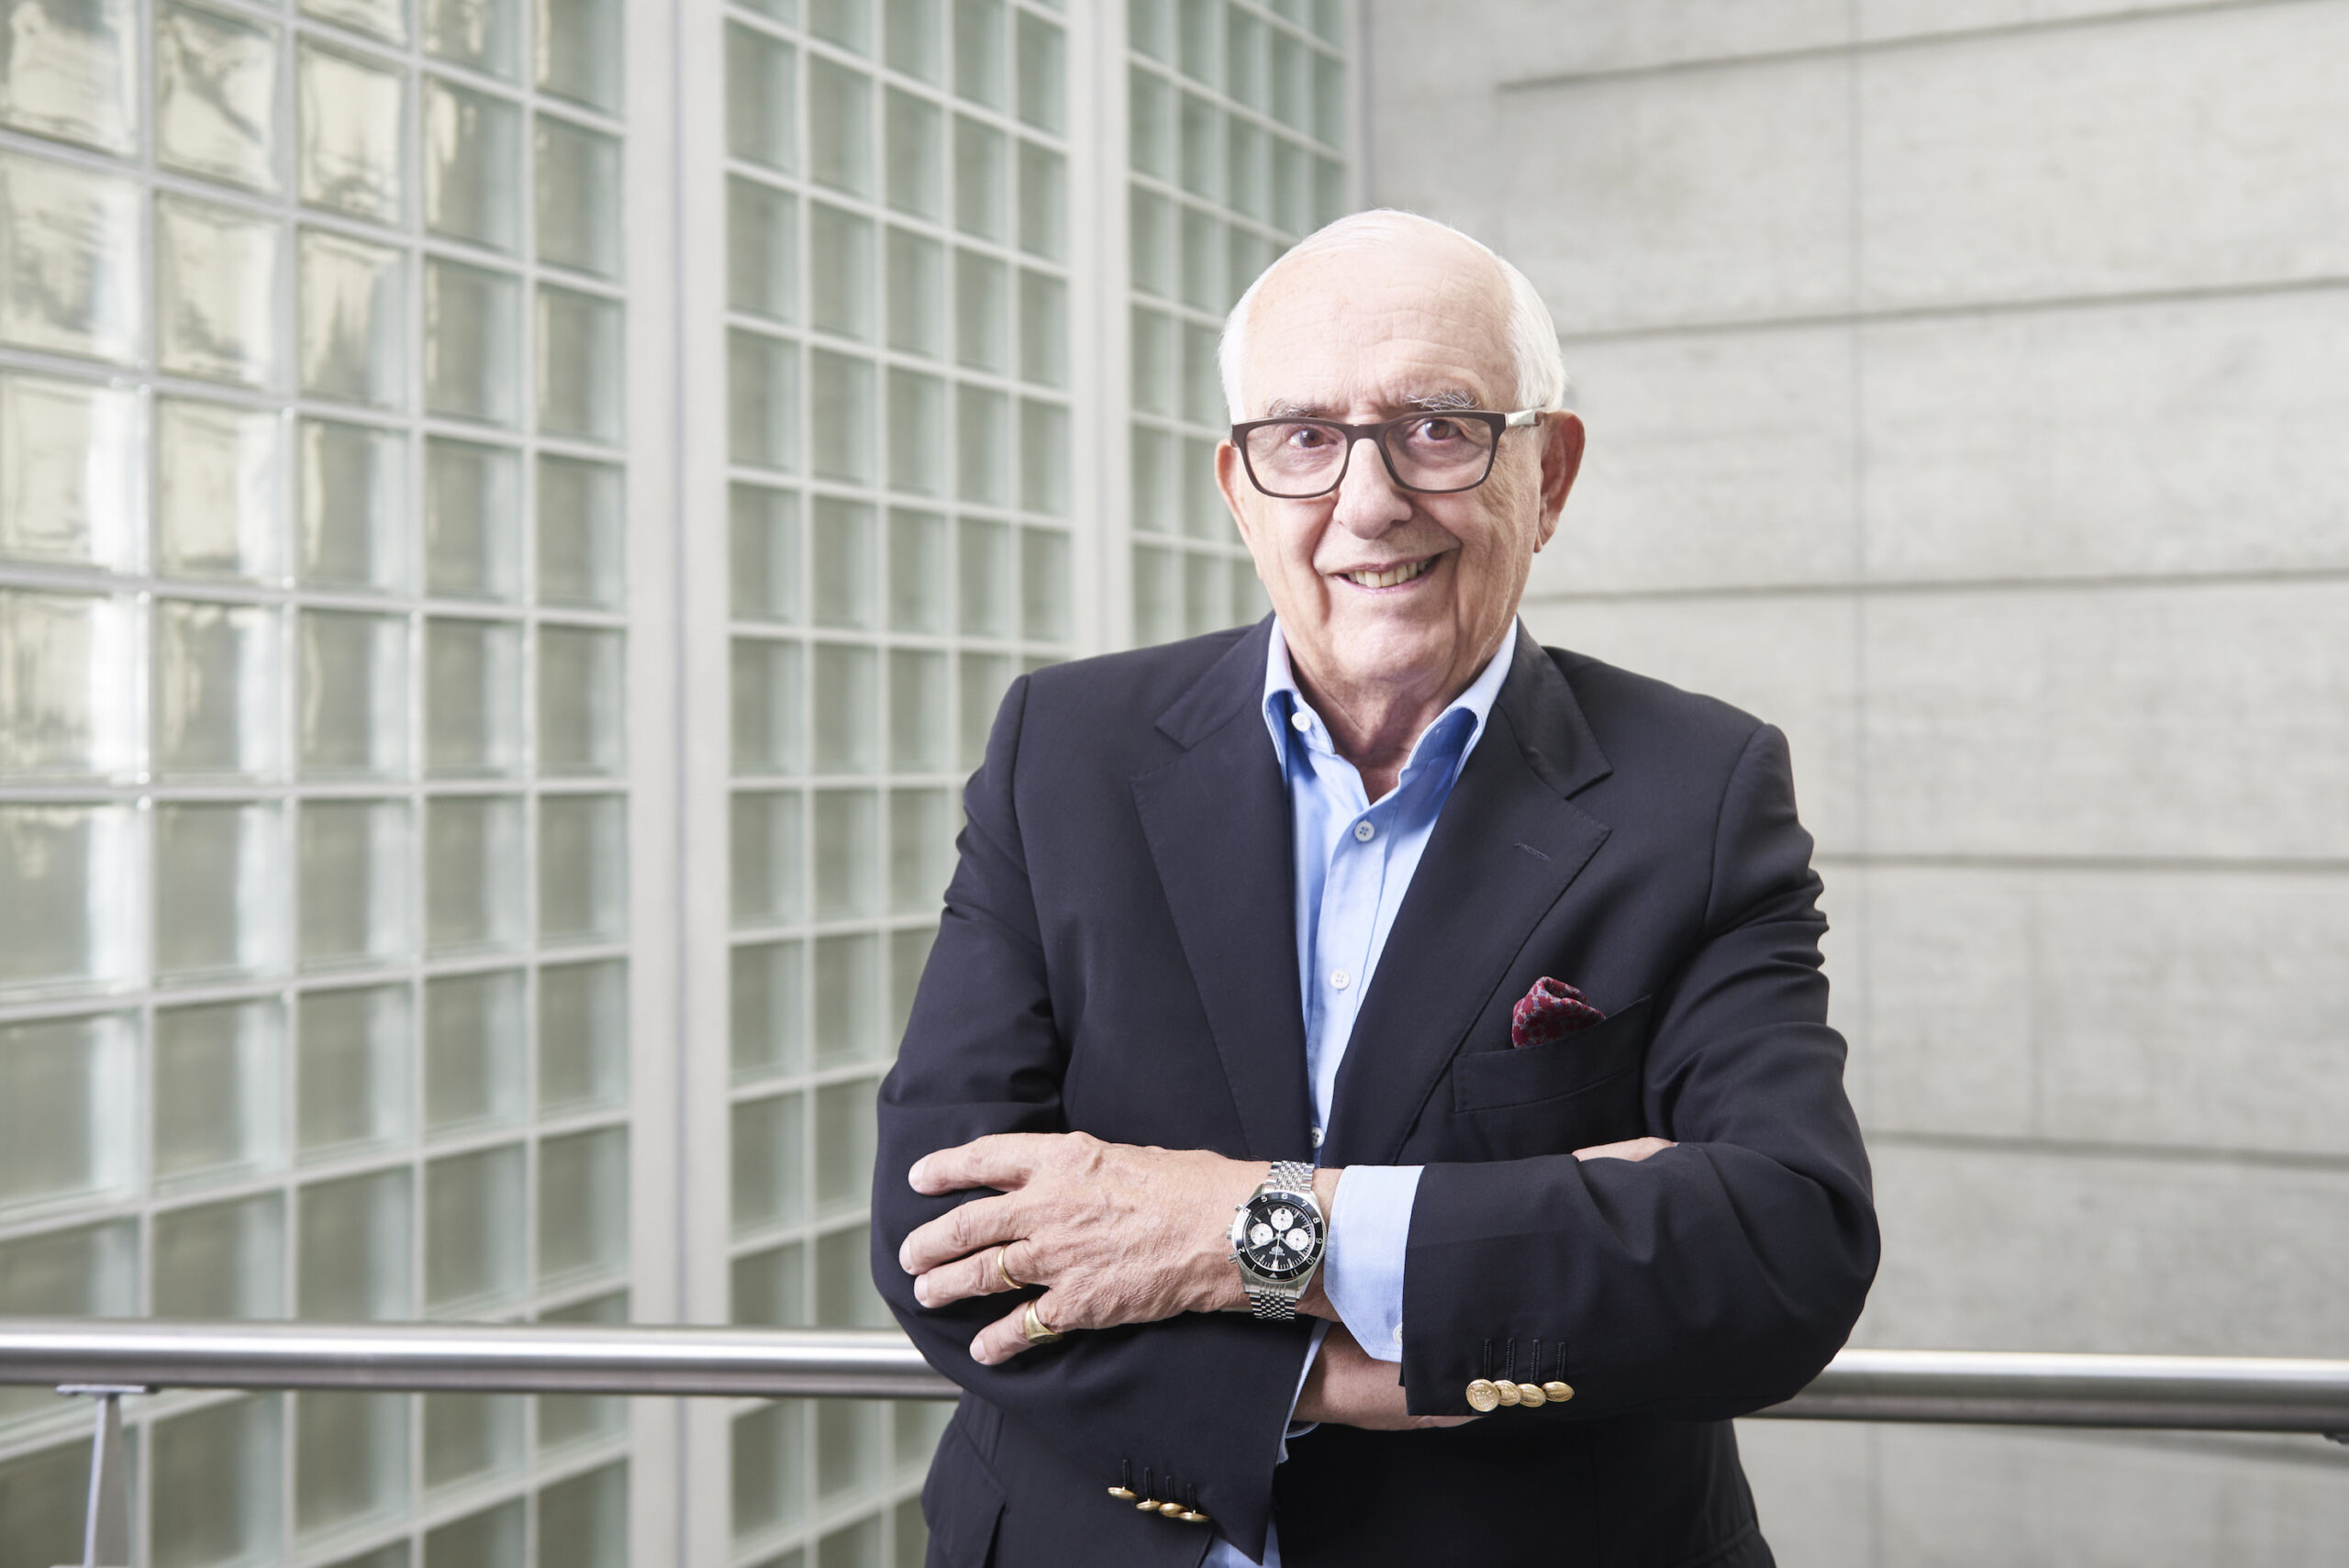 Jack W. Heuer in 2017, proudly sporting the new Autavia